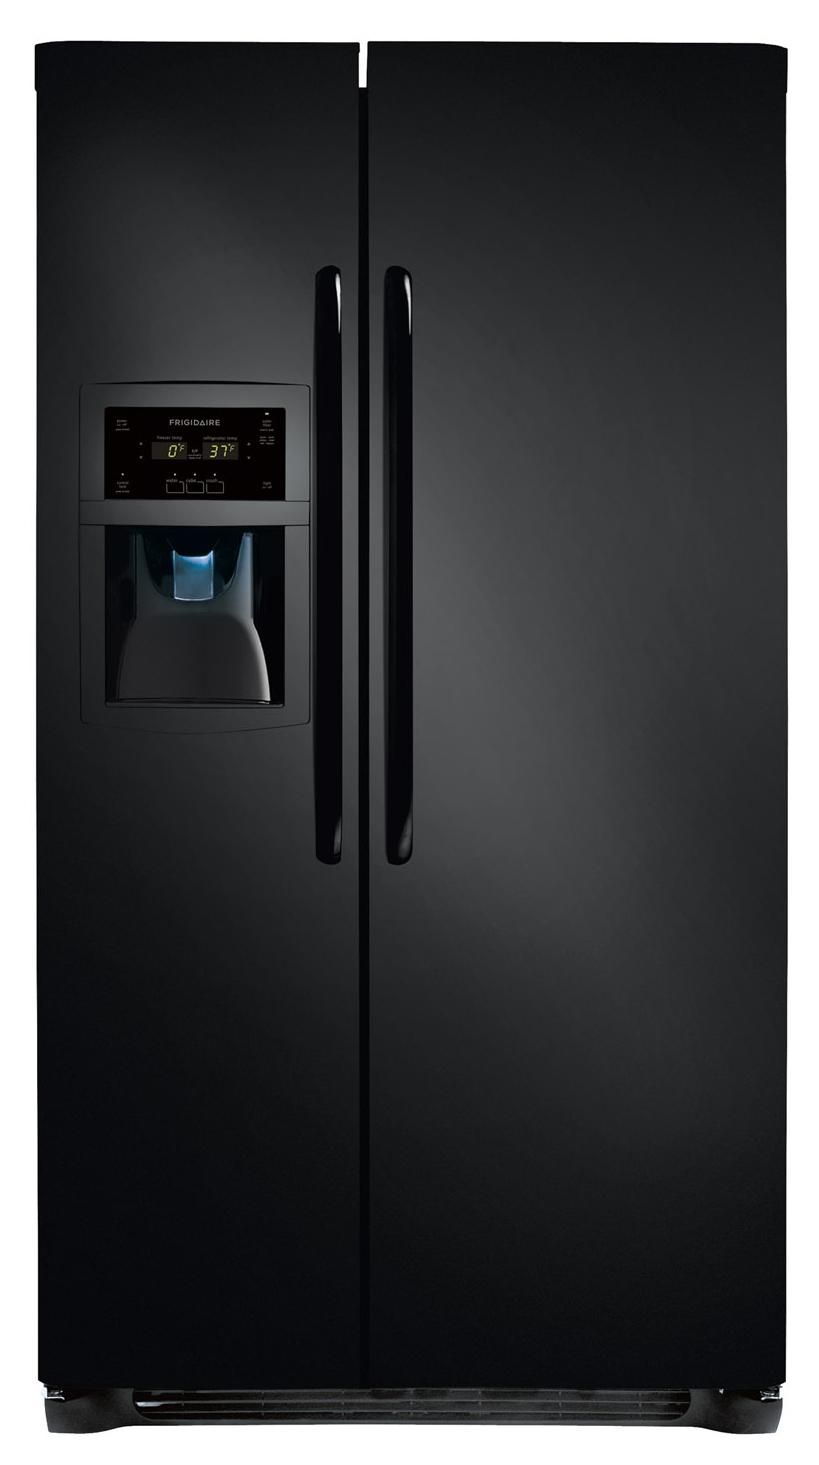 Frigidaire Side-By-Side Refrigerators 23 Cu. Ft. Side-by-Side Refrigerator - Item Number: FFSC2323LE